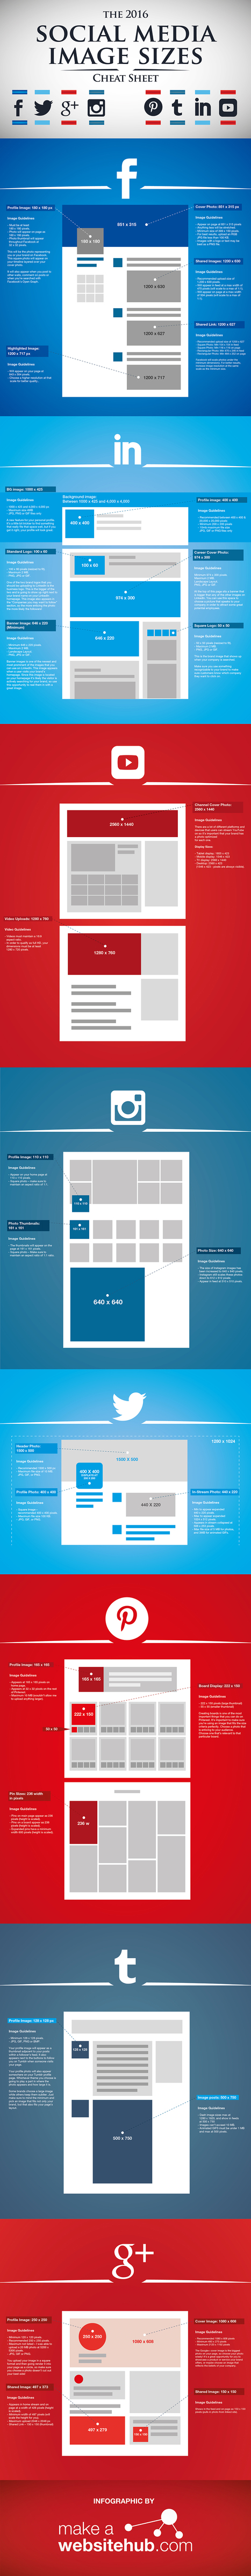 2016 Social Media Image Sizes Cheat Sheet | World's Best Infographics | Scoop.it